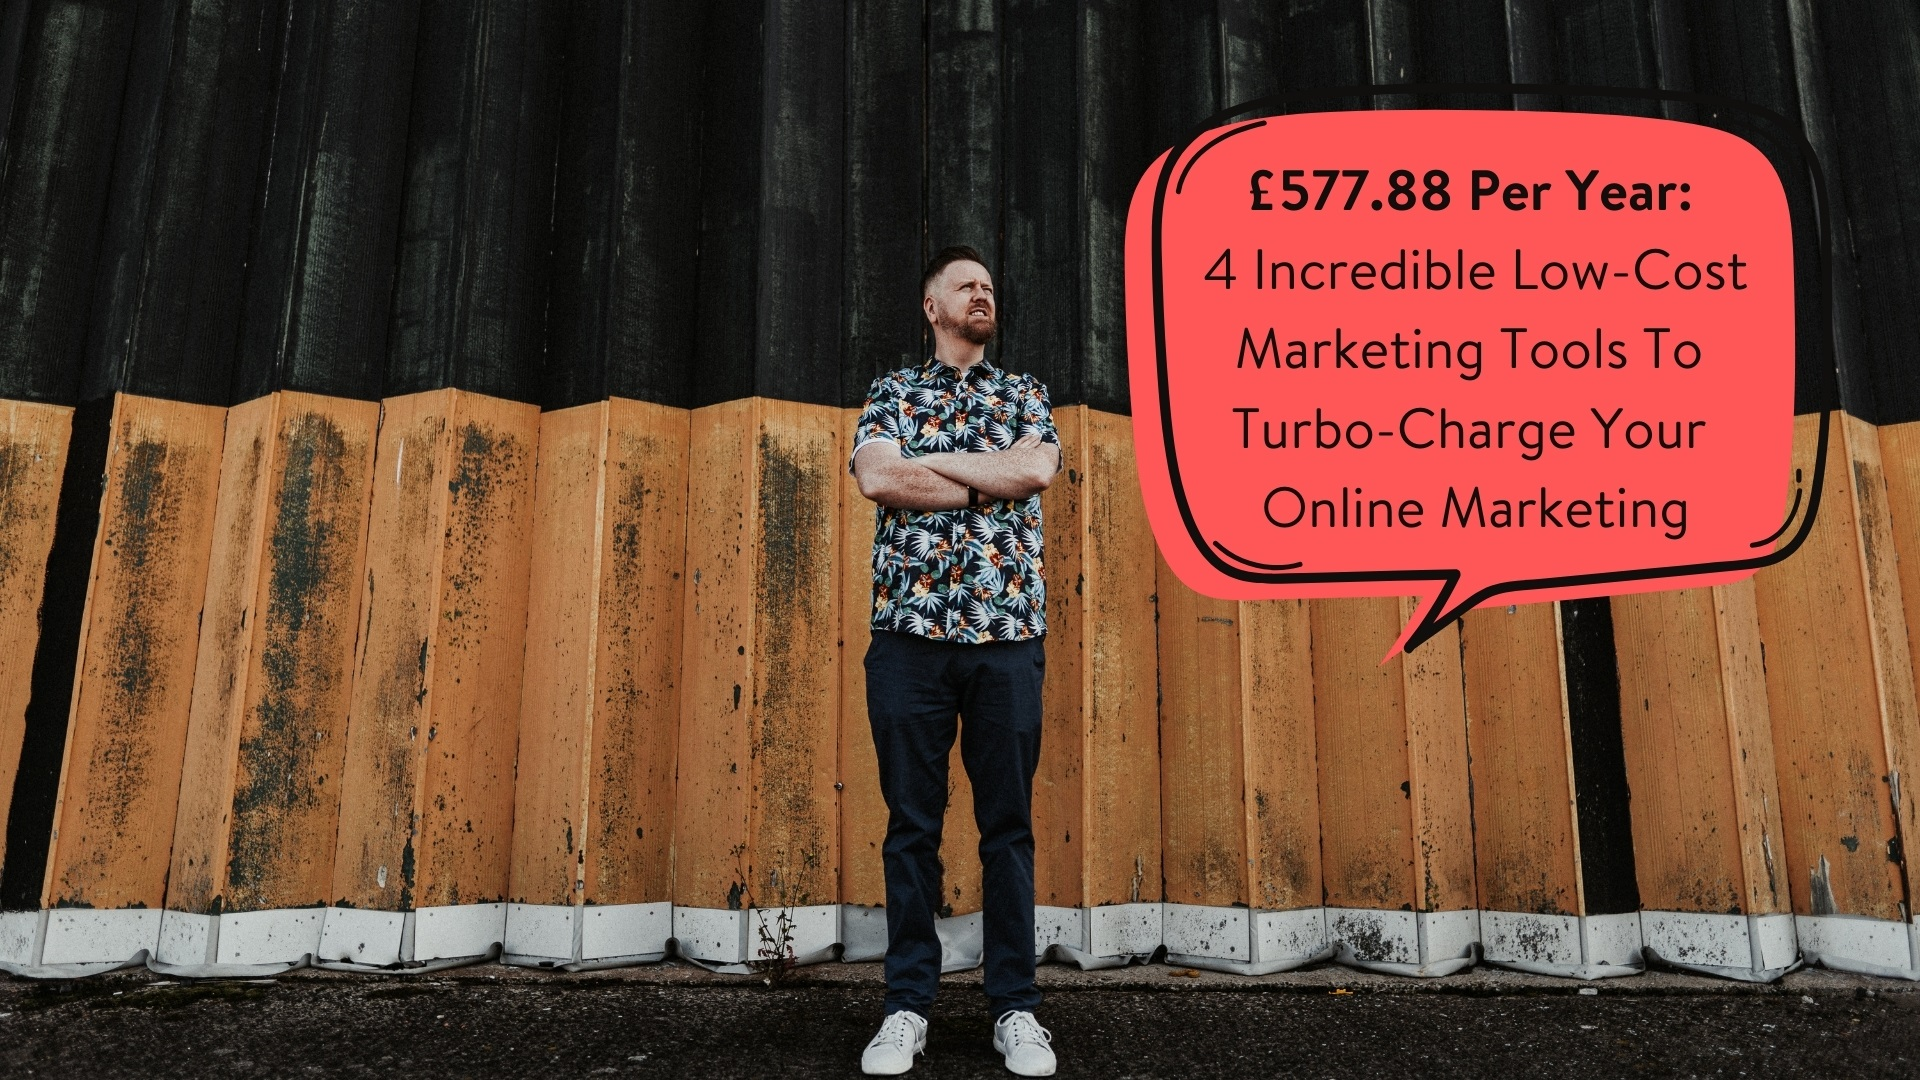 £577.88 Per Year_ How These 4 Incredible Low-Cost Marketing Tools Will Turbo-Charge Your Online Marketing - Belfast Copywriter - Content Writer Northern Ireland